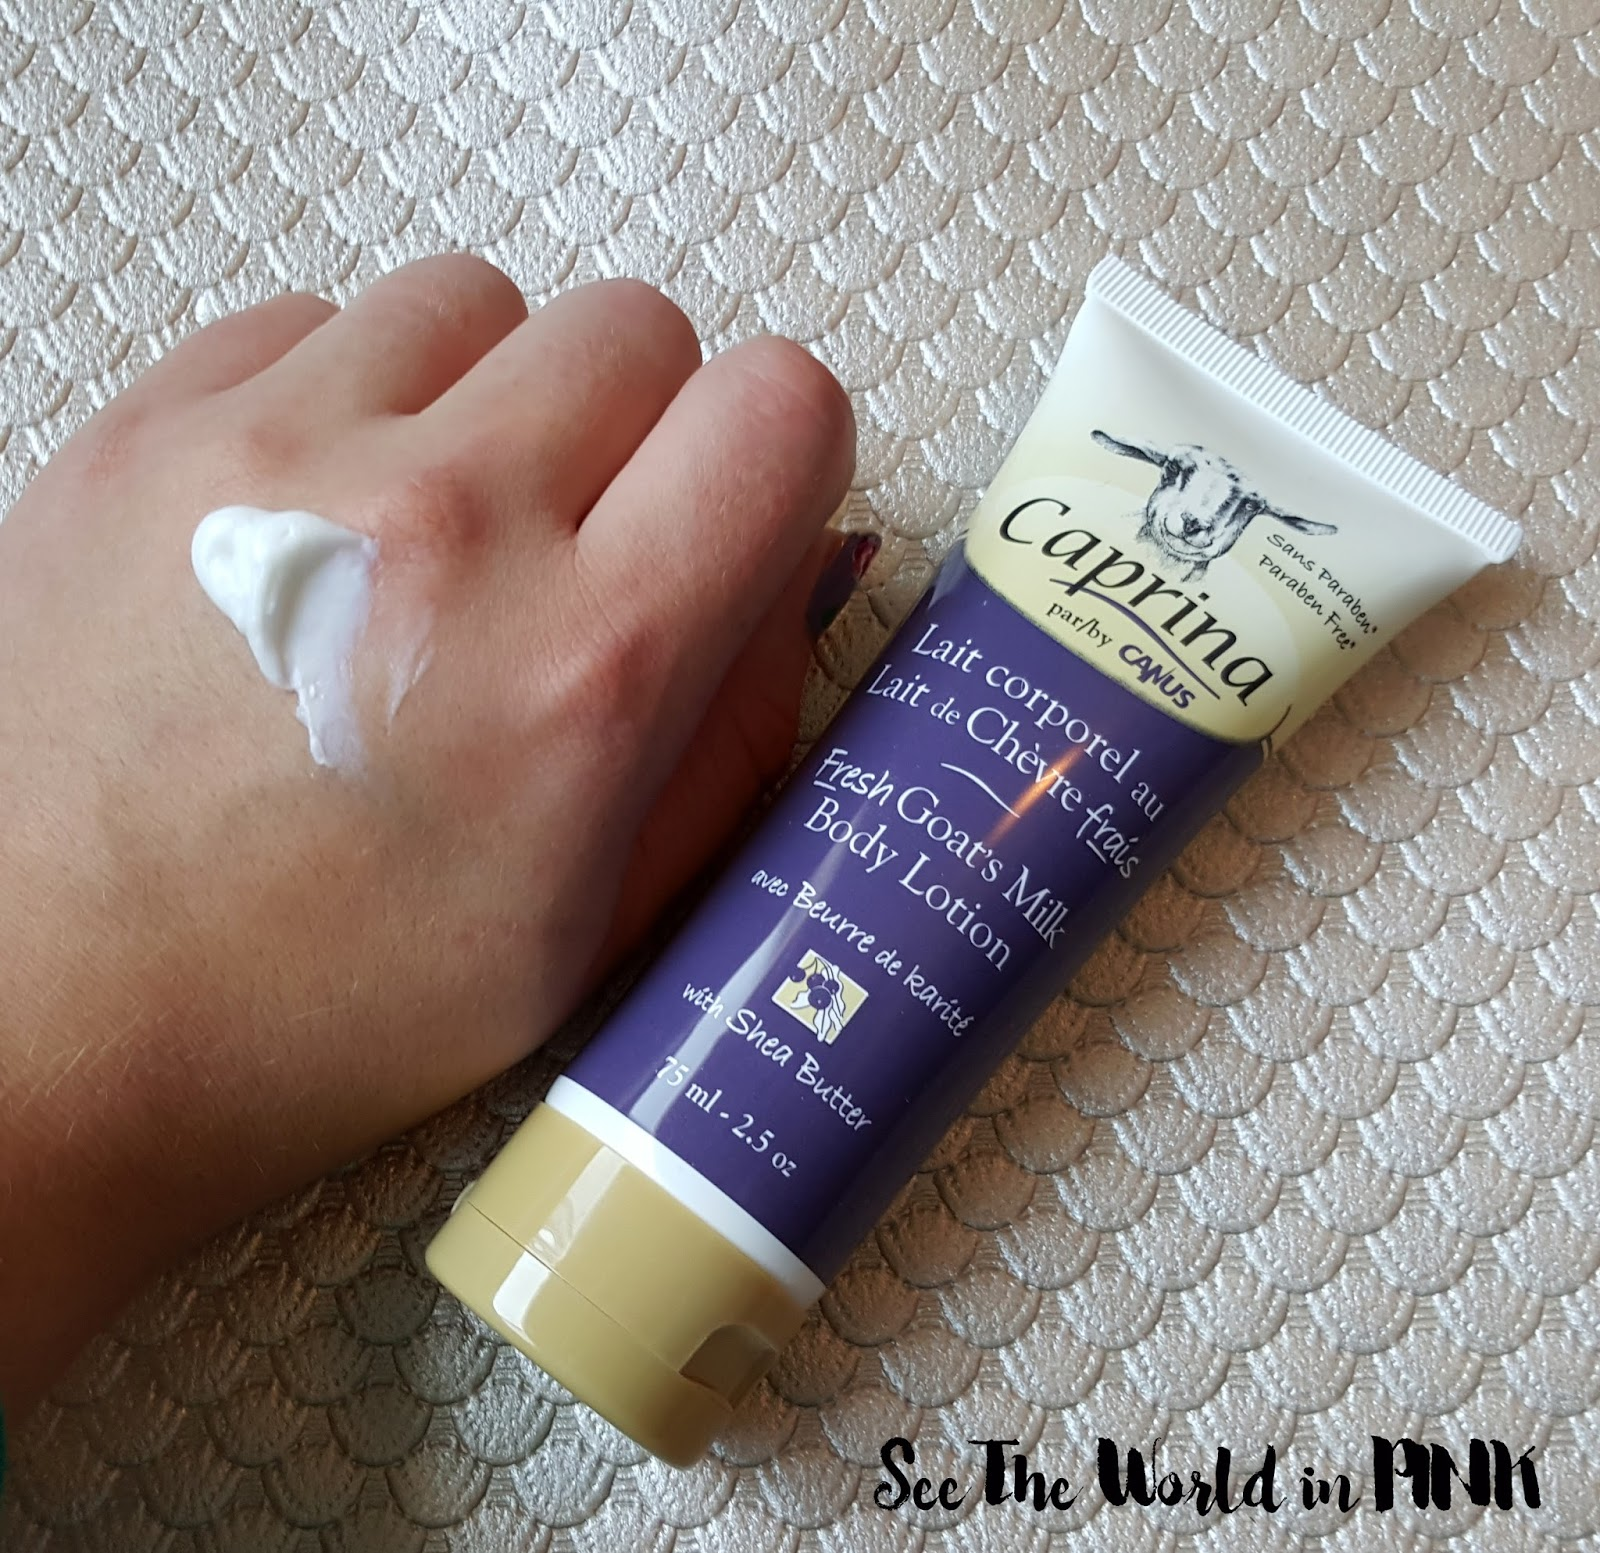 Canus Caprina Skincare Product Reviews body lotion shea butter